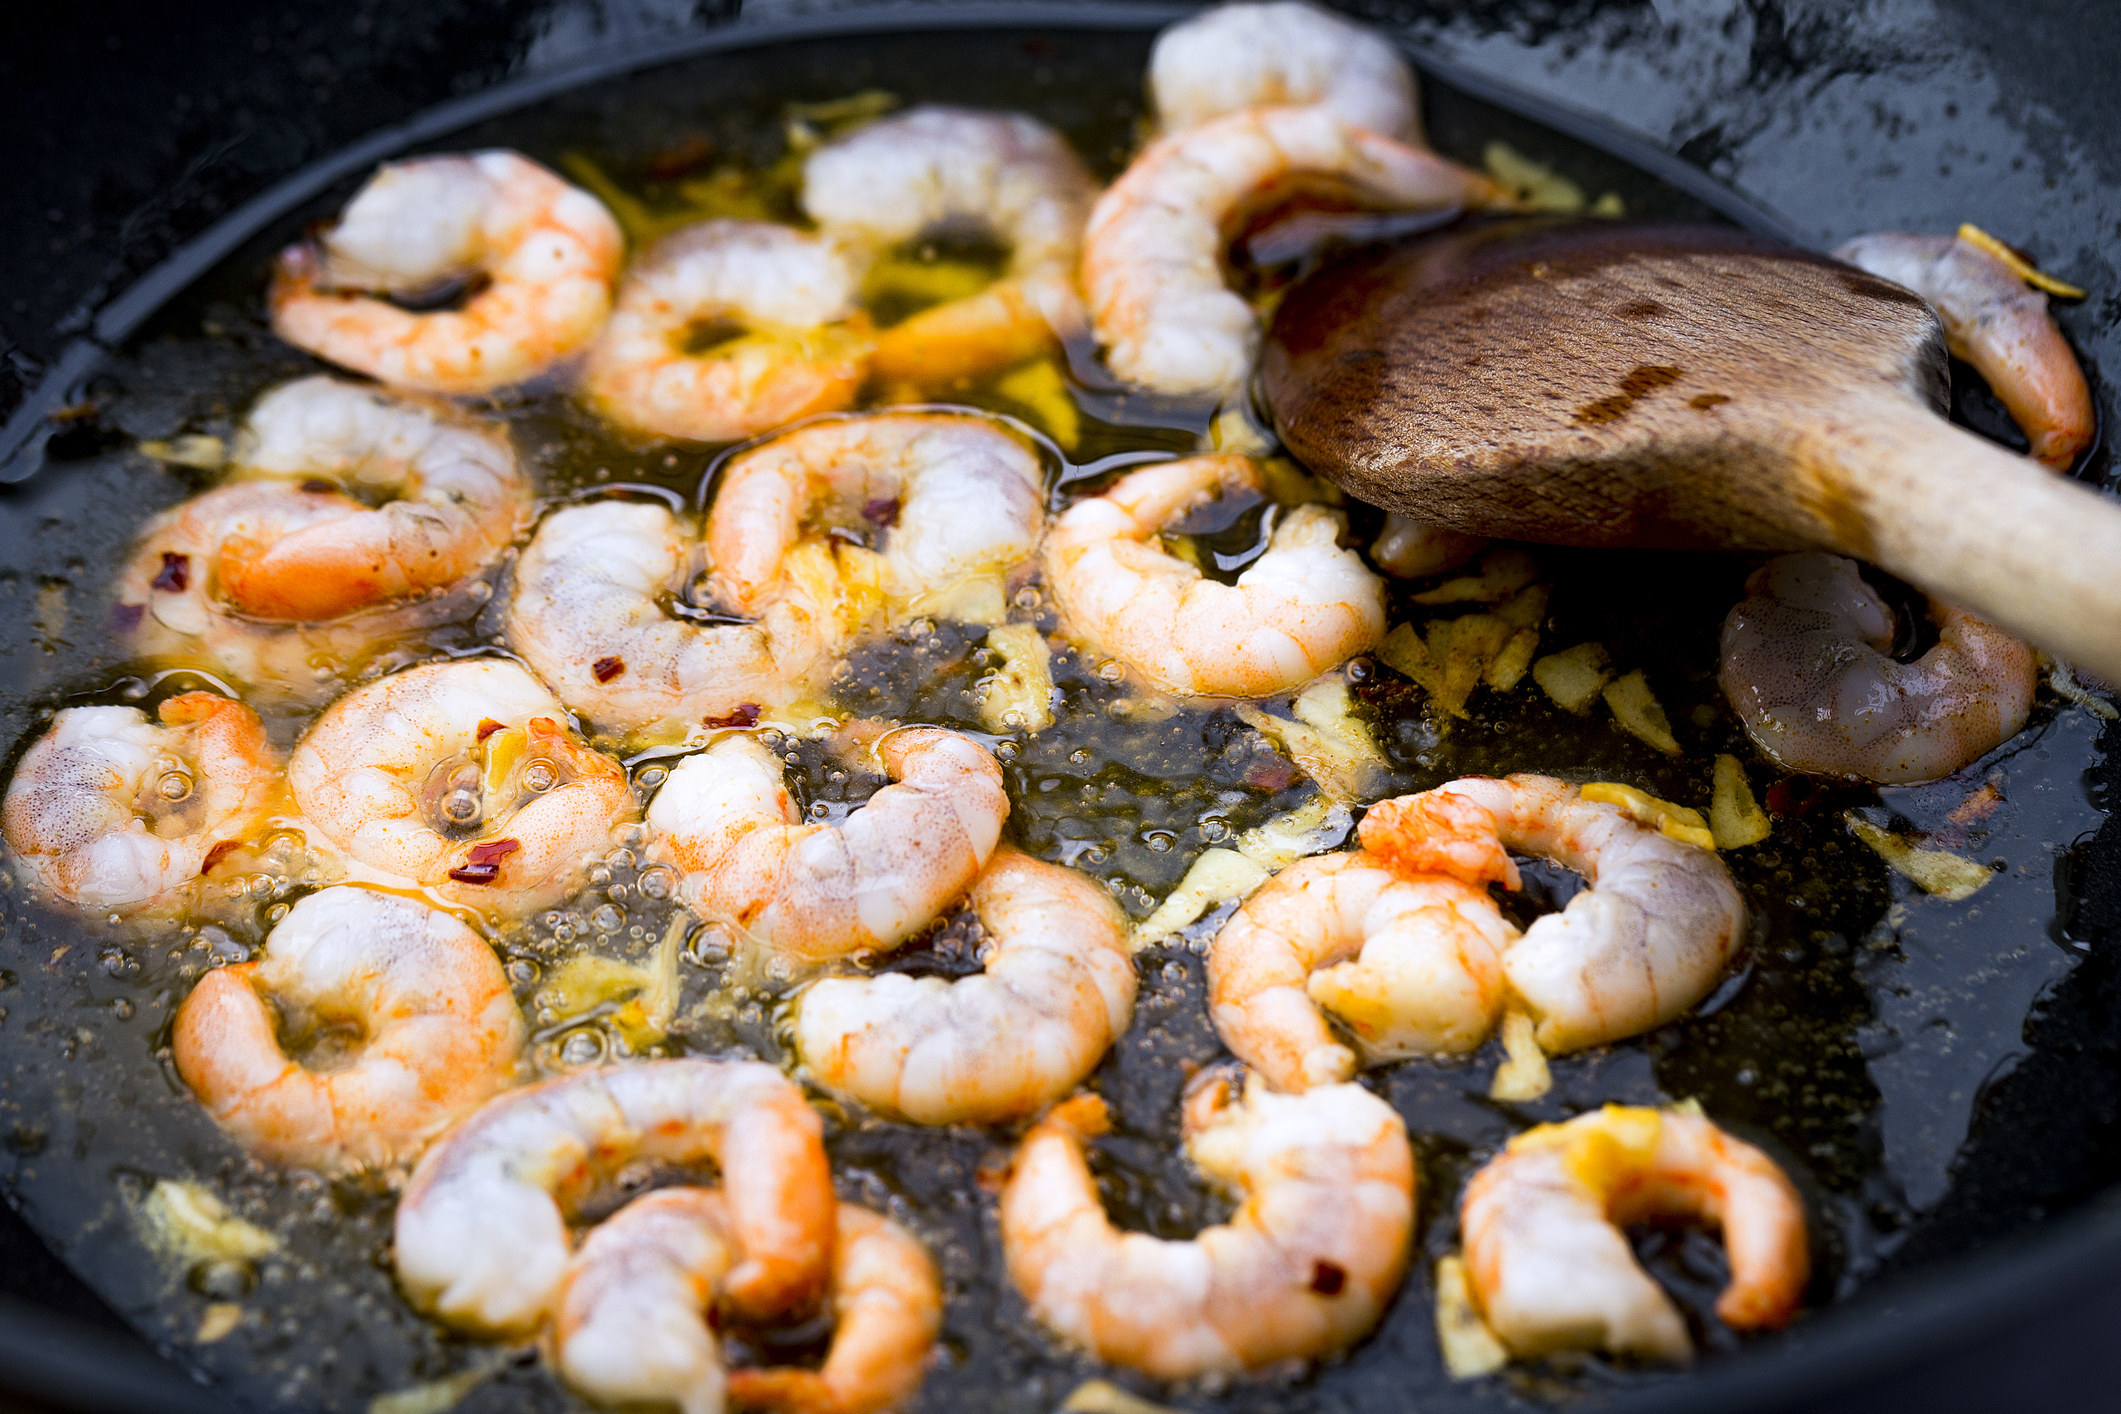 Garlic frying in oil with shrimp.